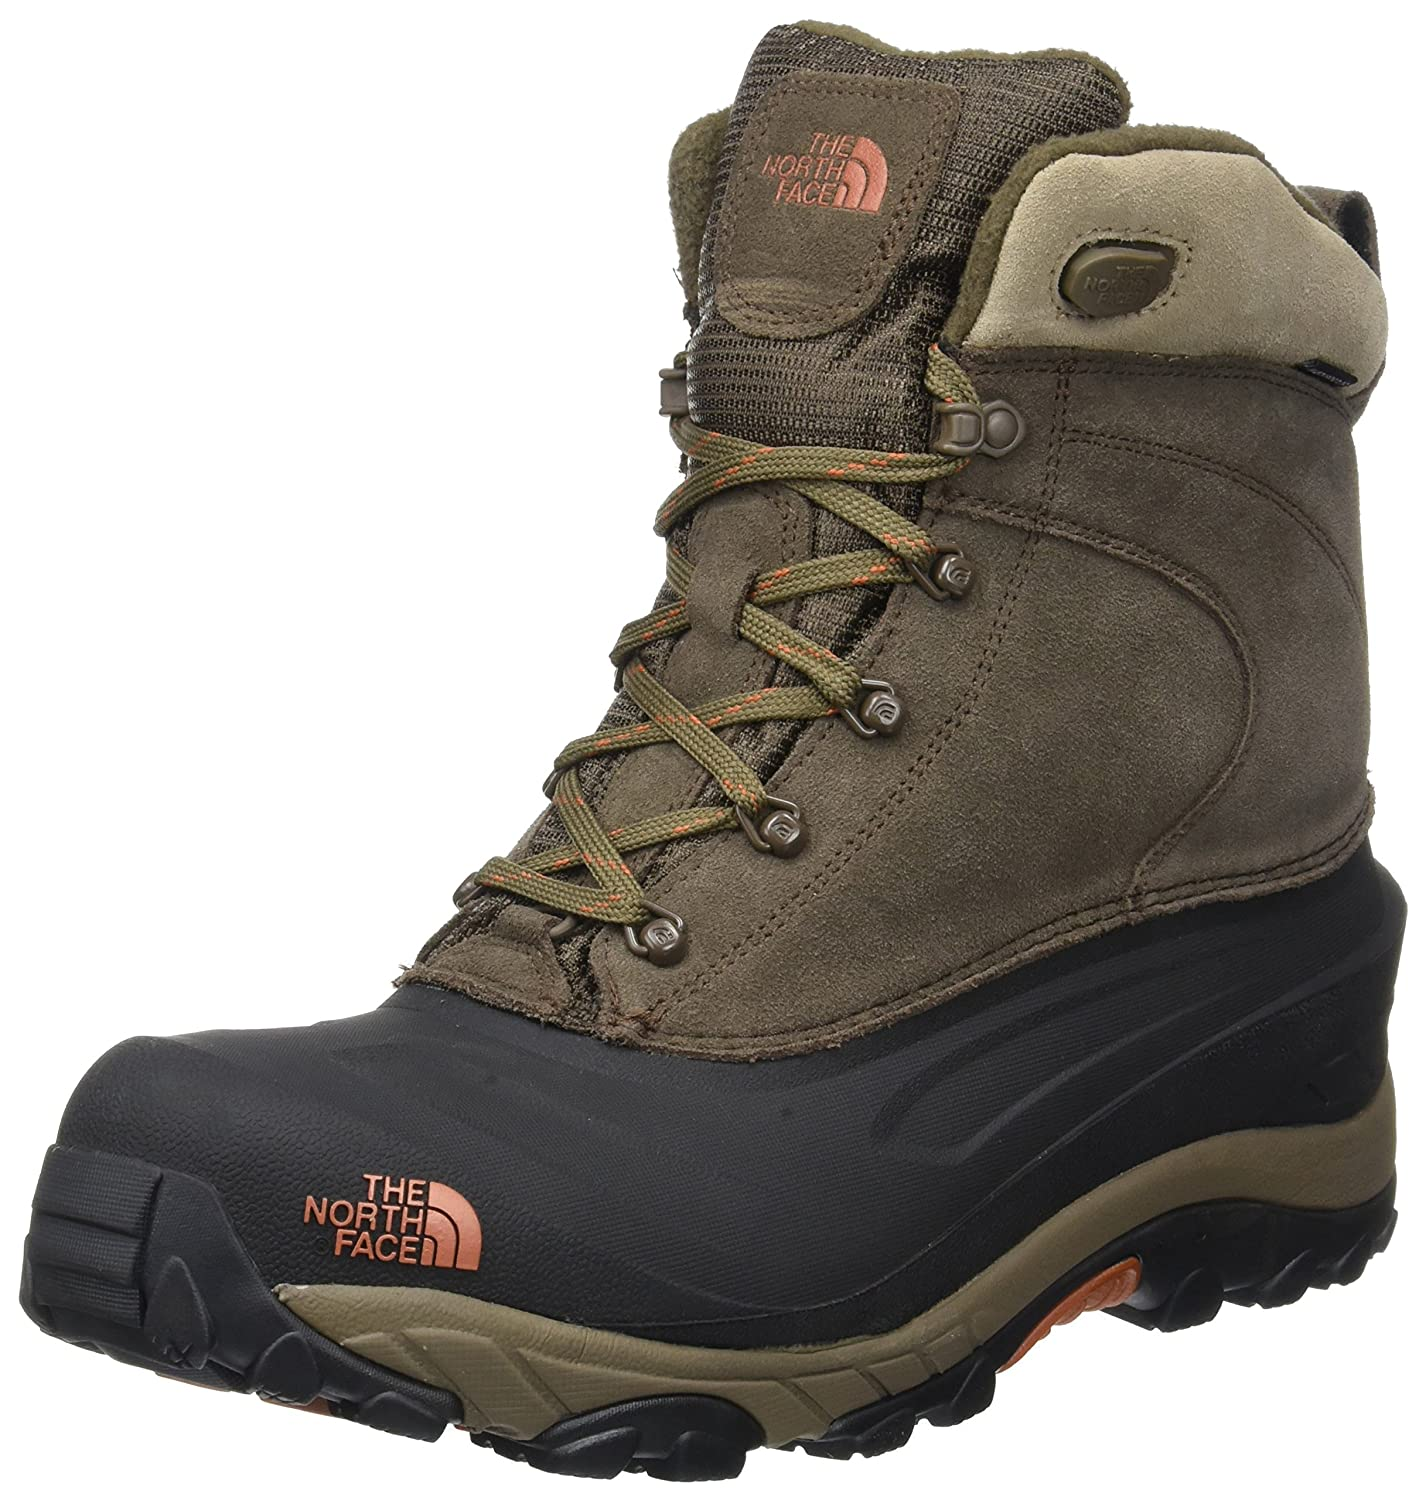 TALLA 40.5 EU. The North Face M Chilkat III, Botas de Senderismo para Hombre